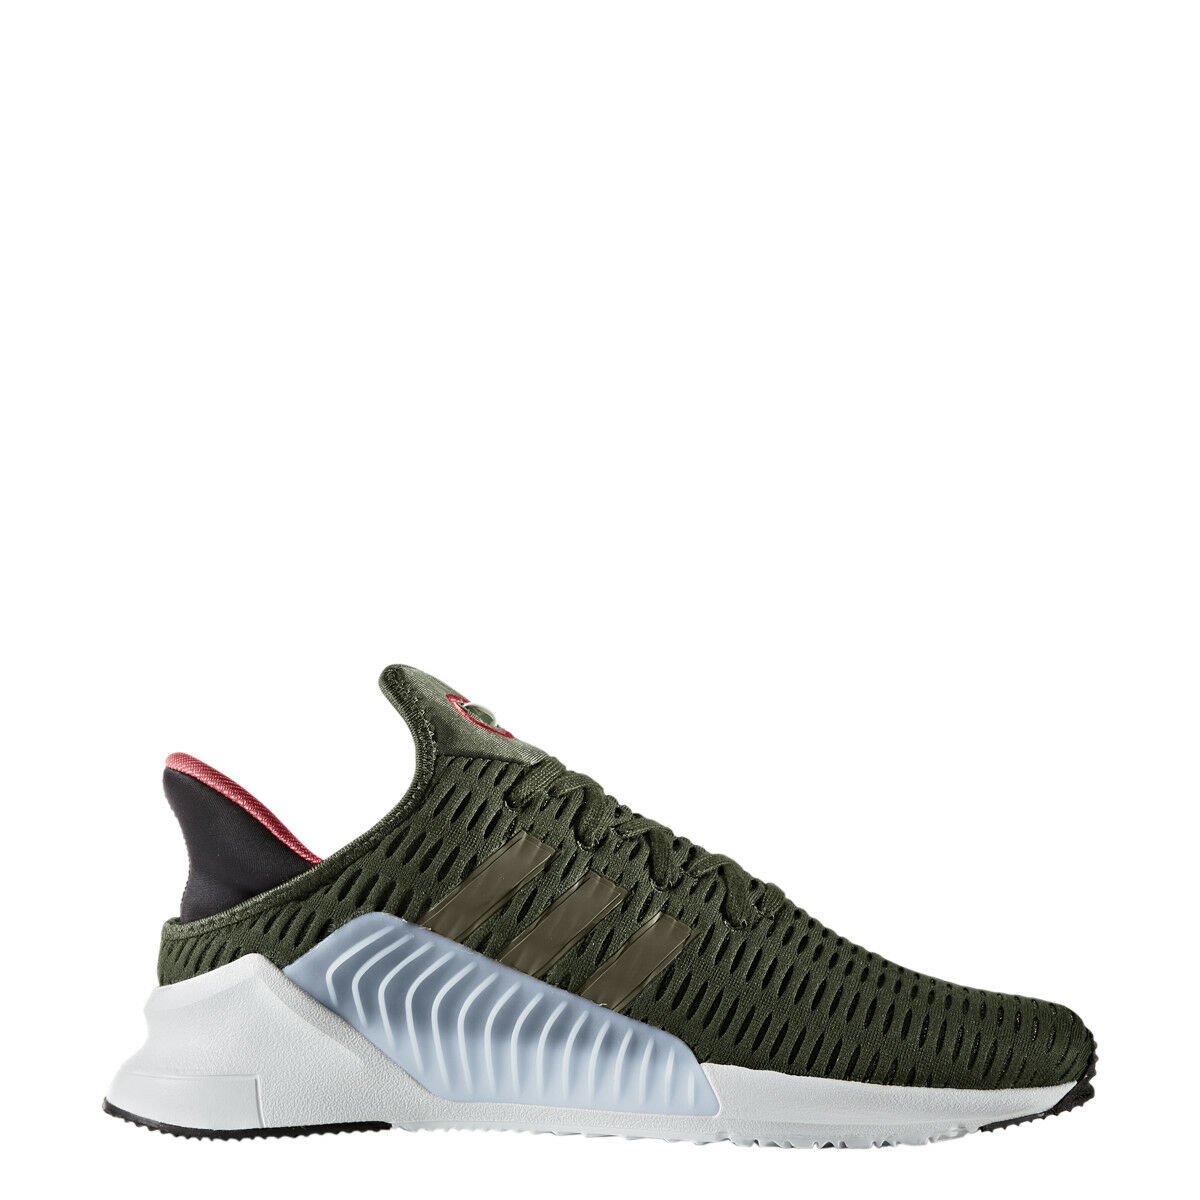 Adidas Men's ClimaCool 02/17 NEW AUTHENTIC Night Cargo / Trace Olive / F CG3345 Great discount